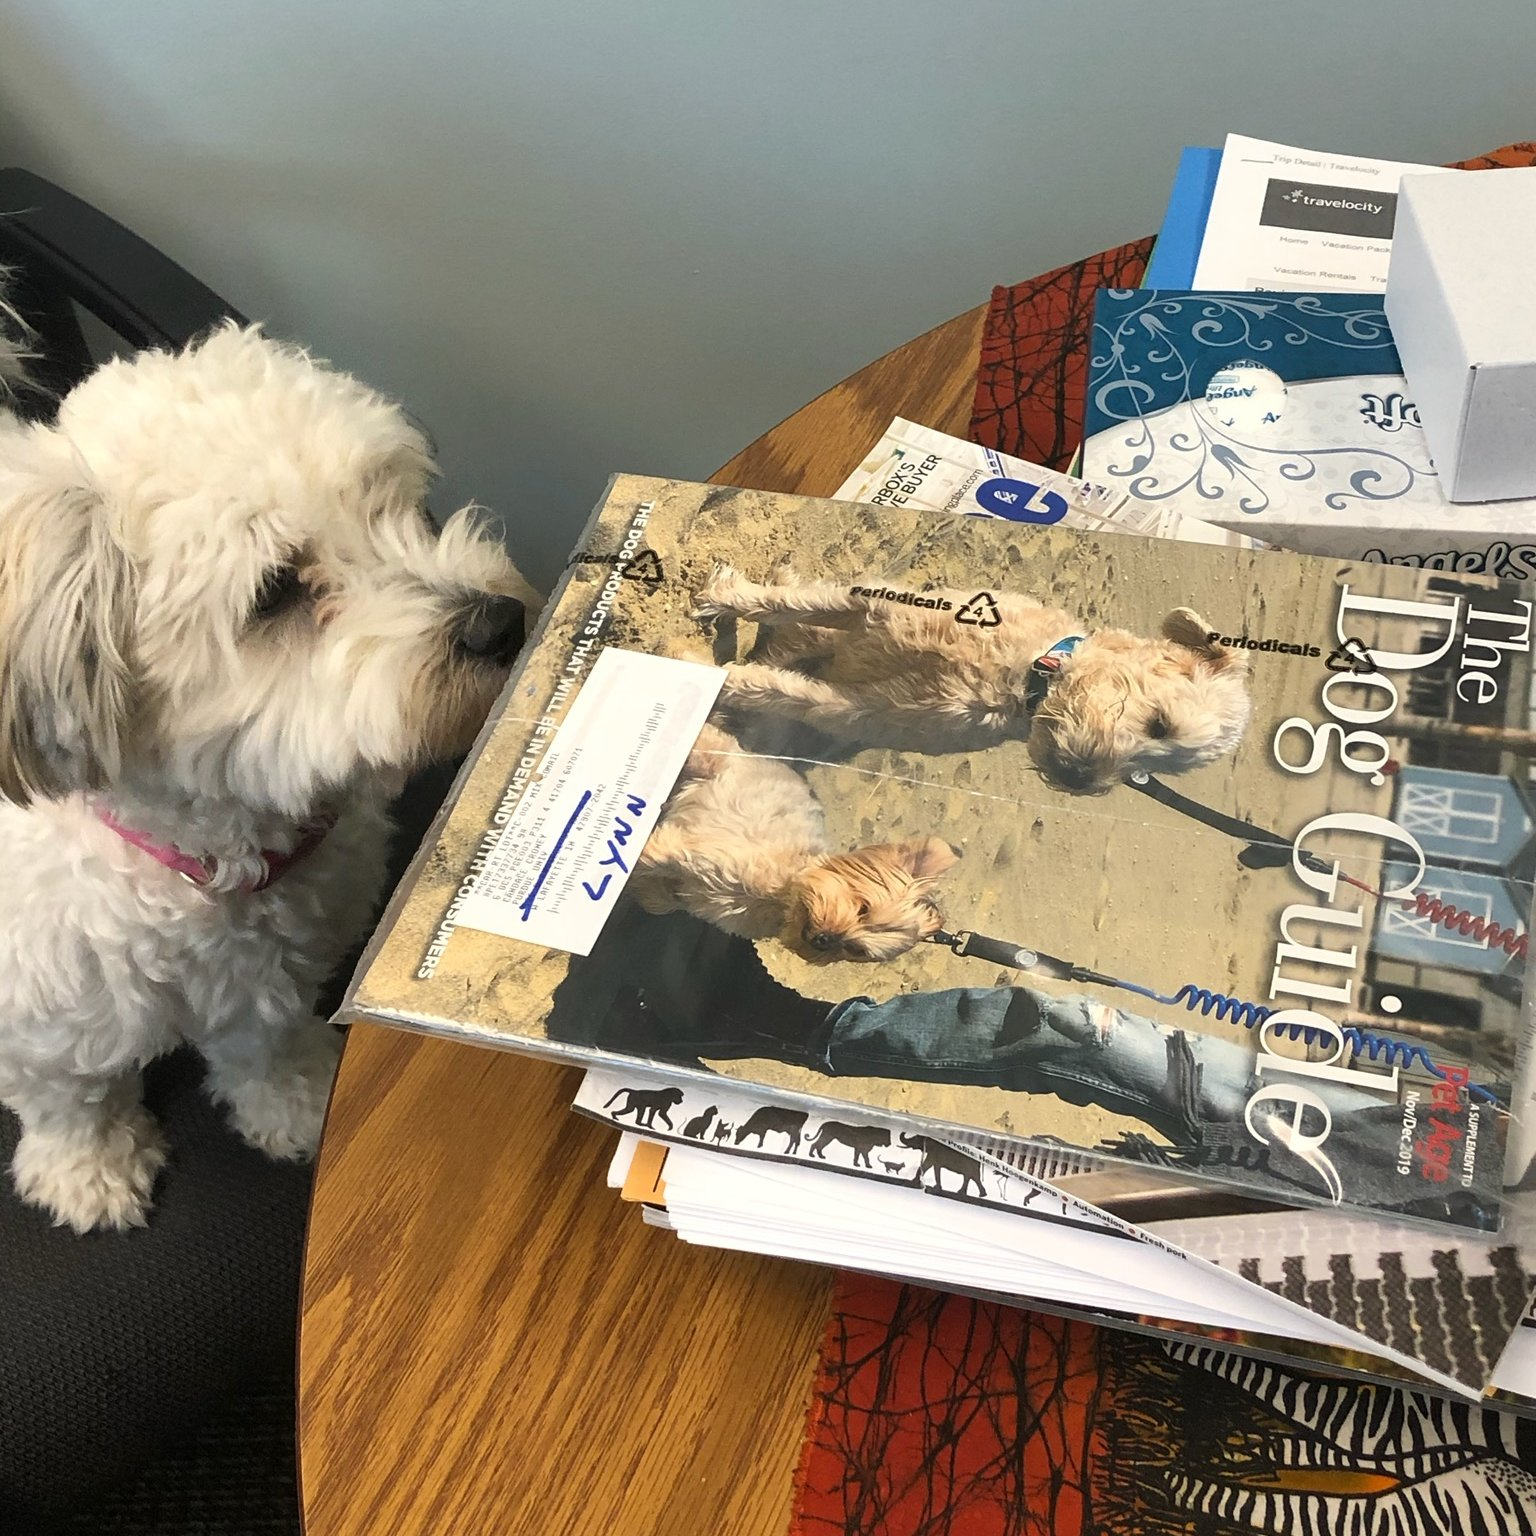 Croney's dog looking at a magazine